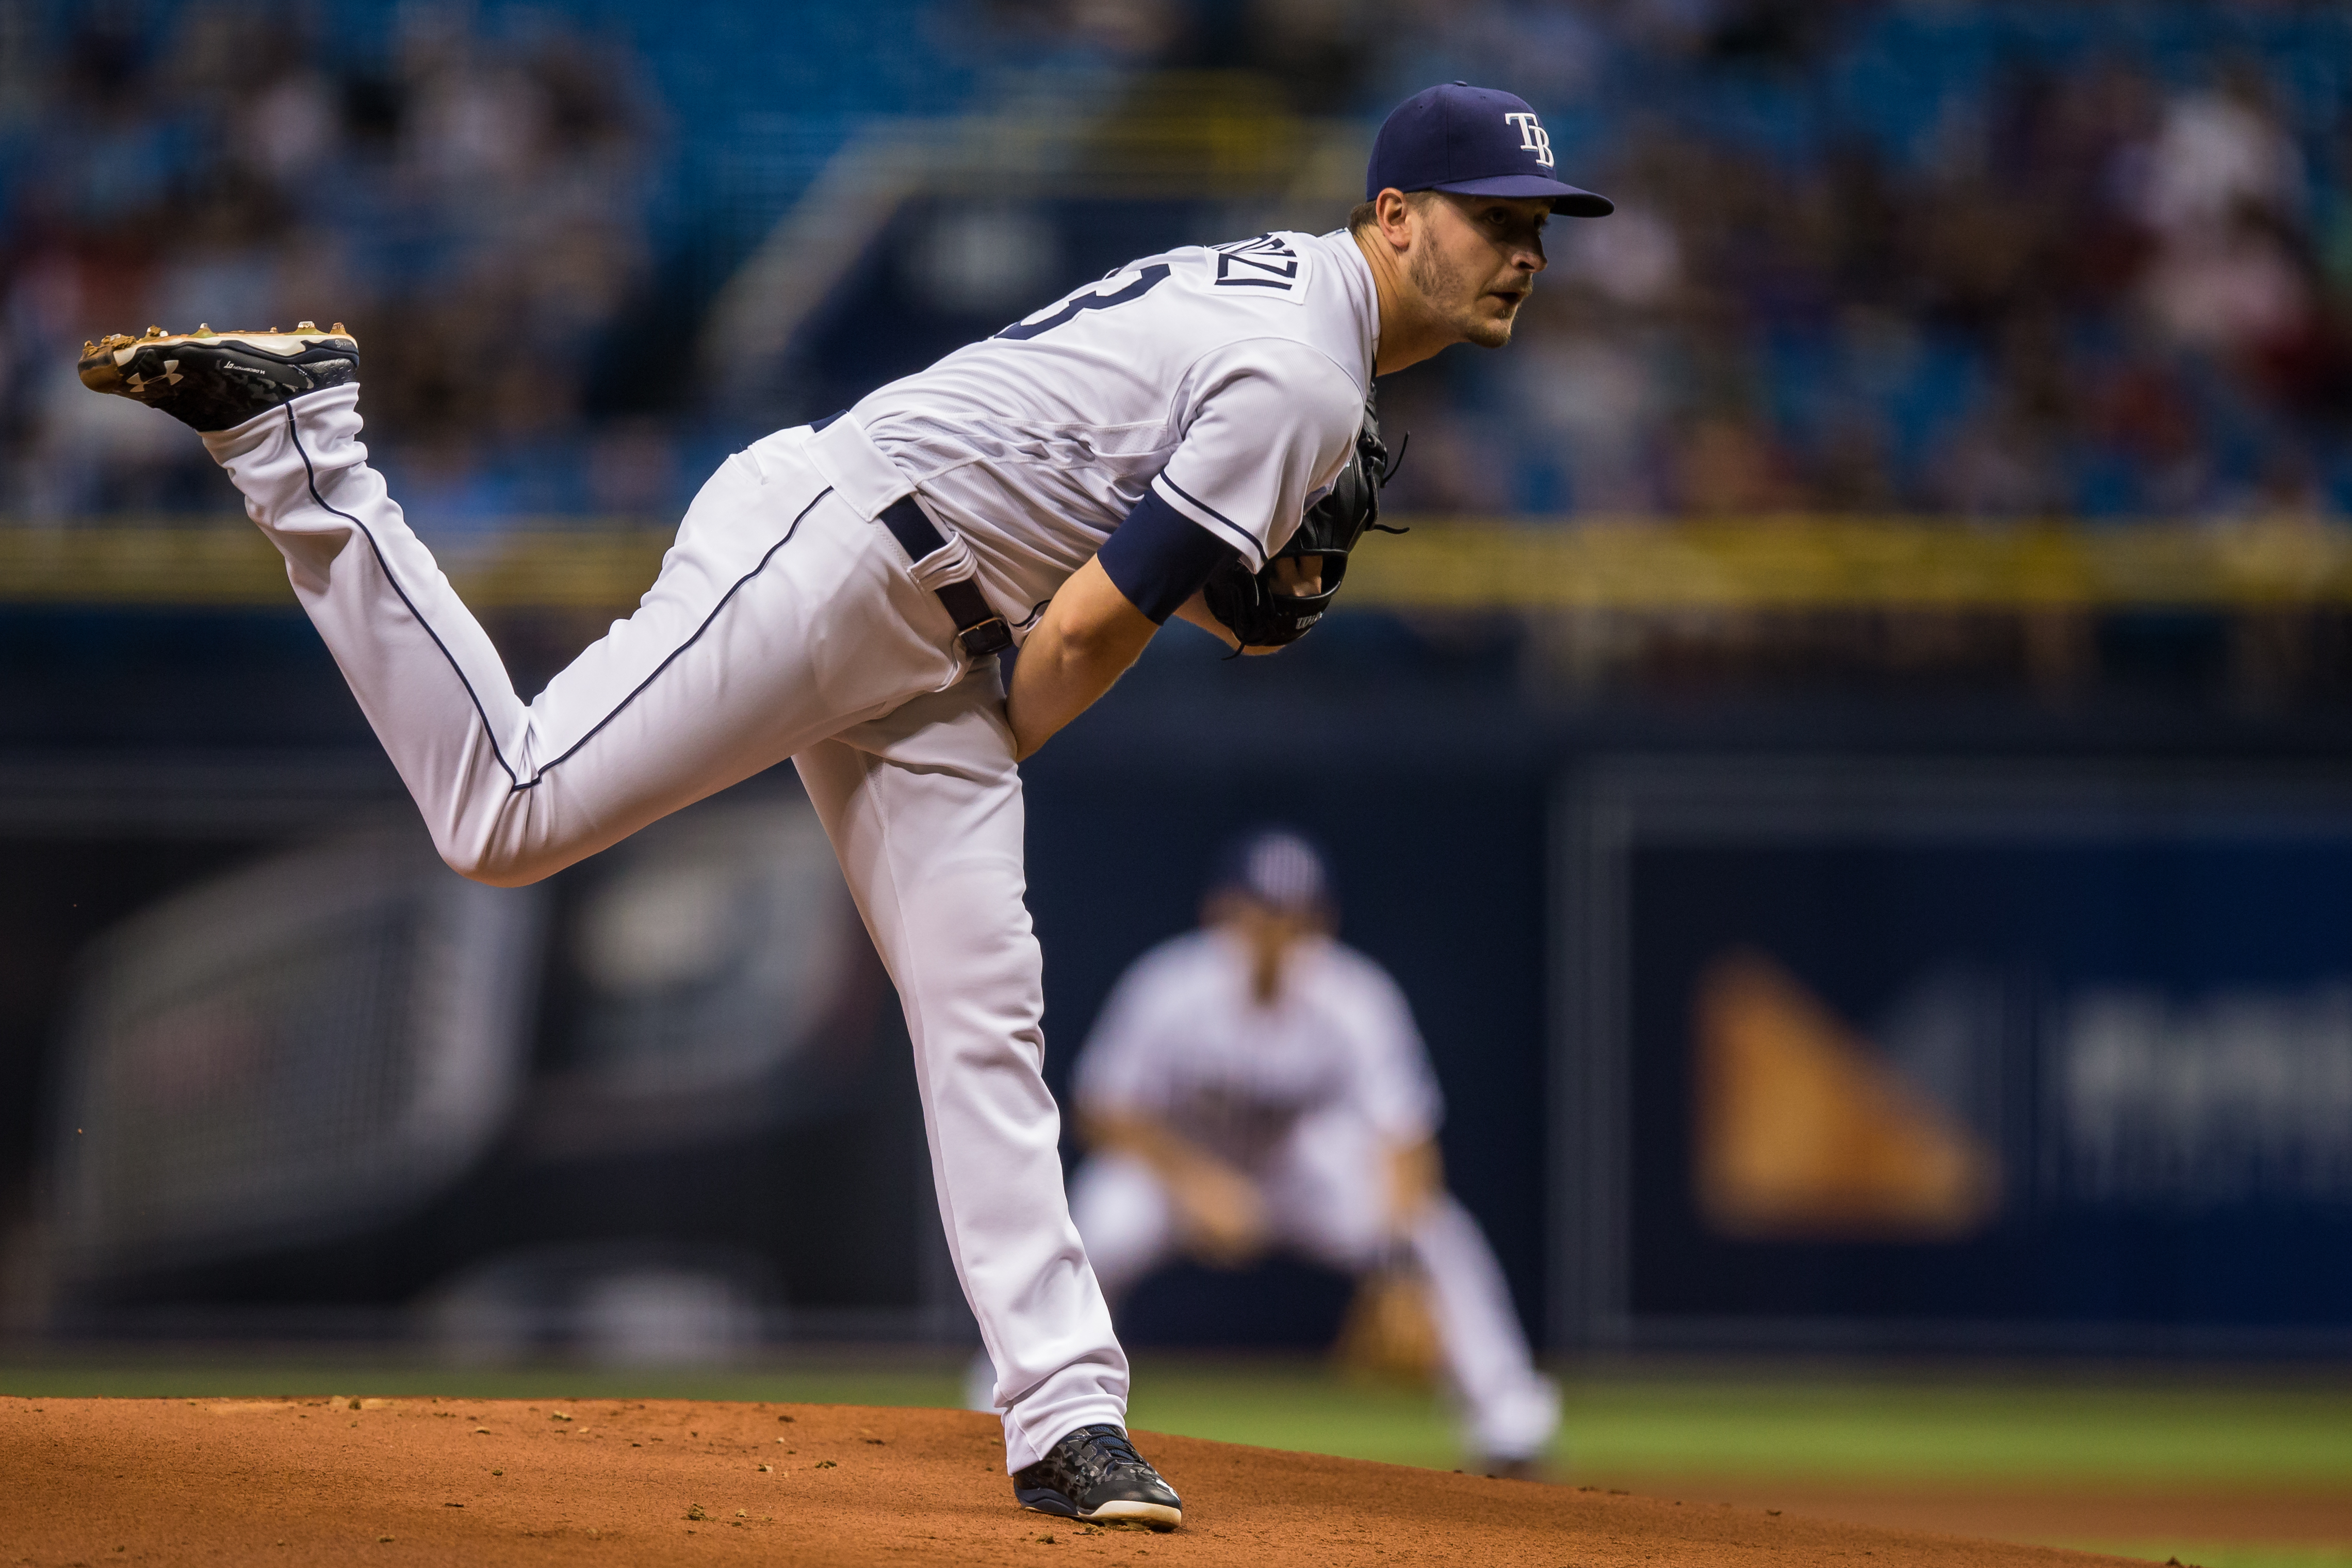 Odorizzi has thrown back-to-back shutouts for Rays./TRAVIS PENDERGRASS